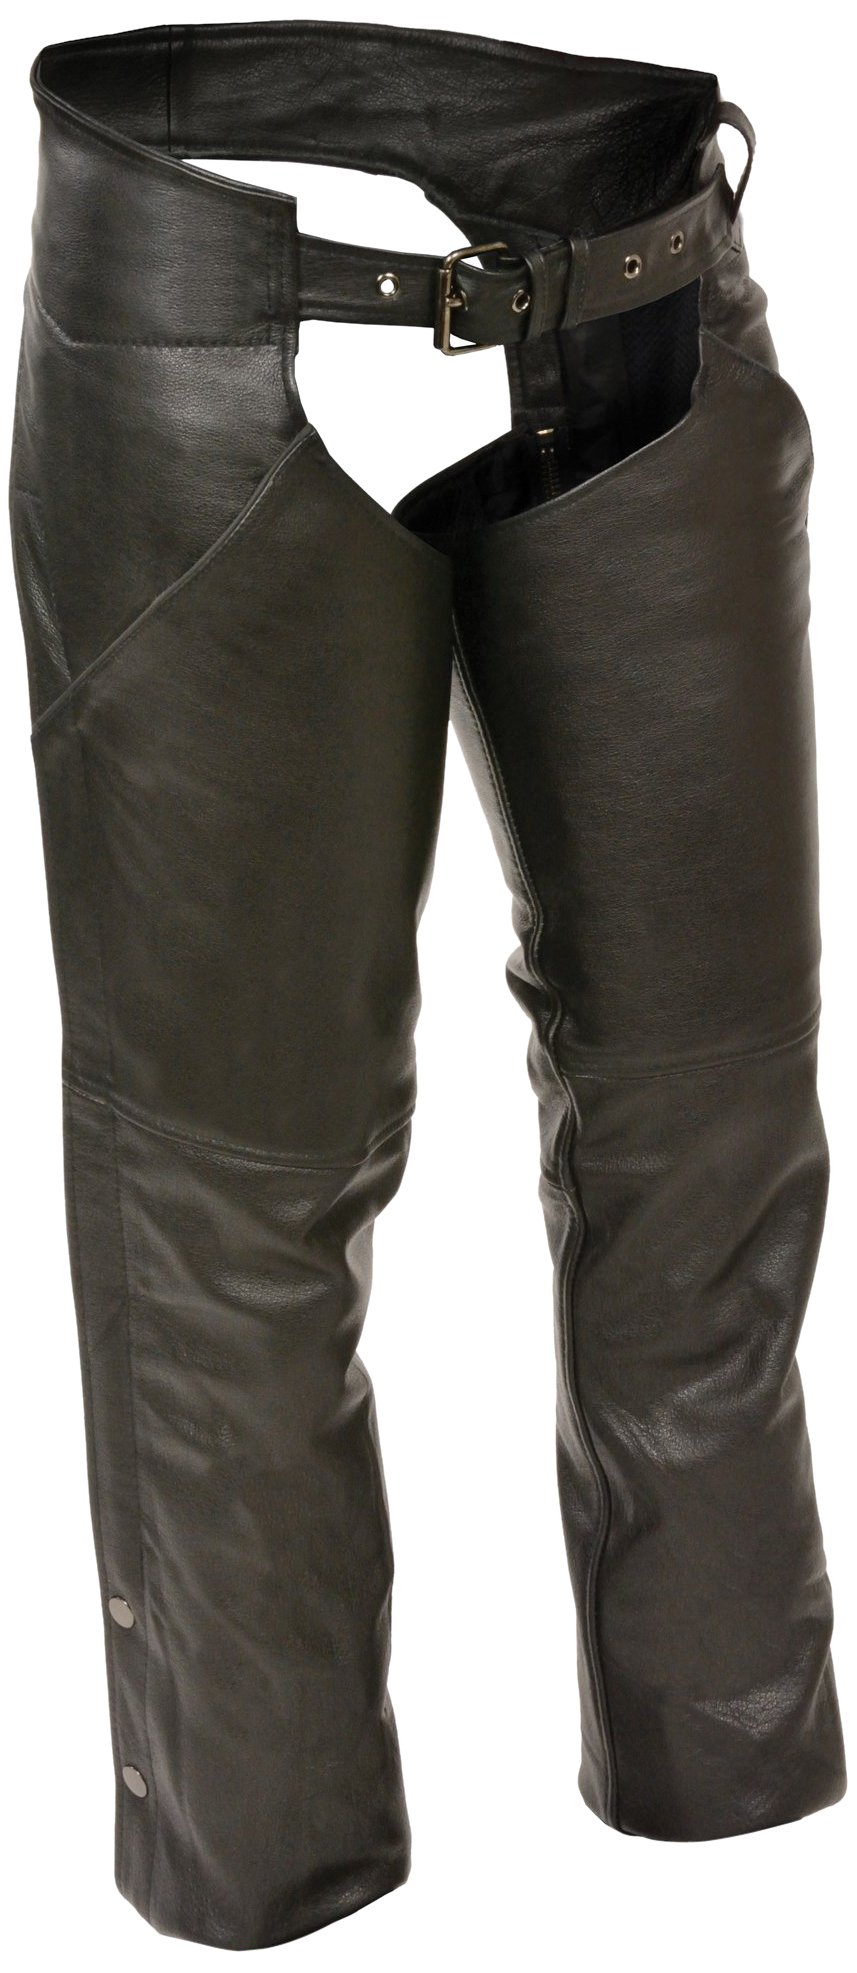 Milwaukee Women's Basic Chaps with Deep Pockets (Black, X-Large)